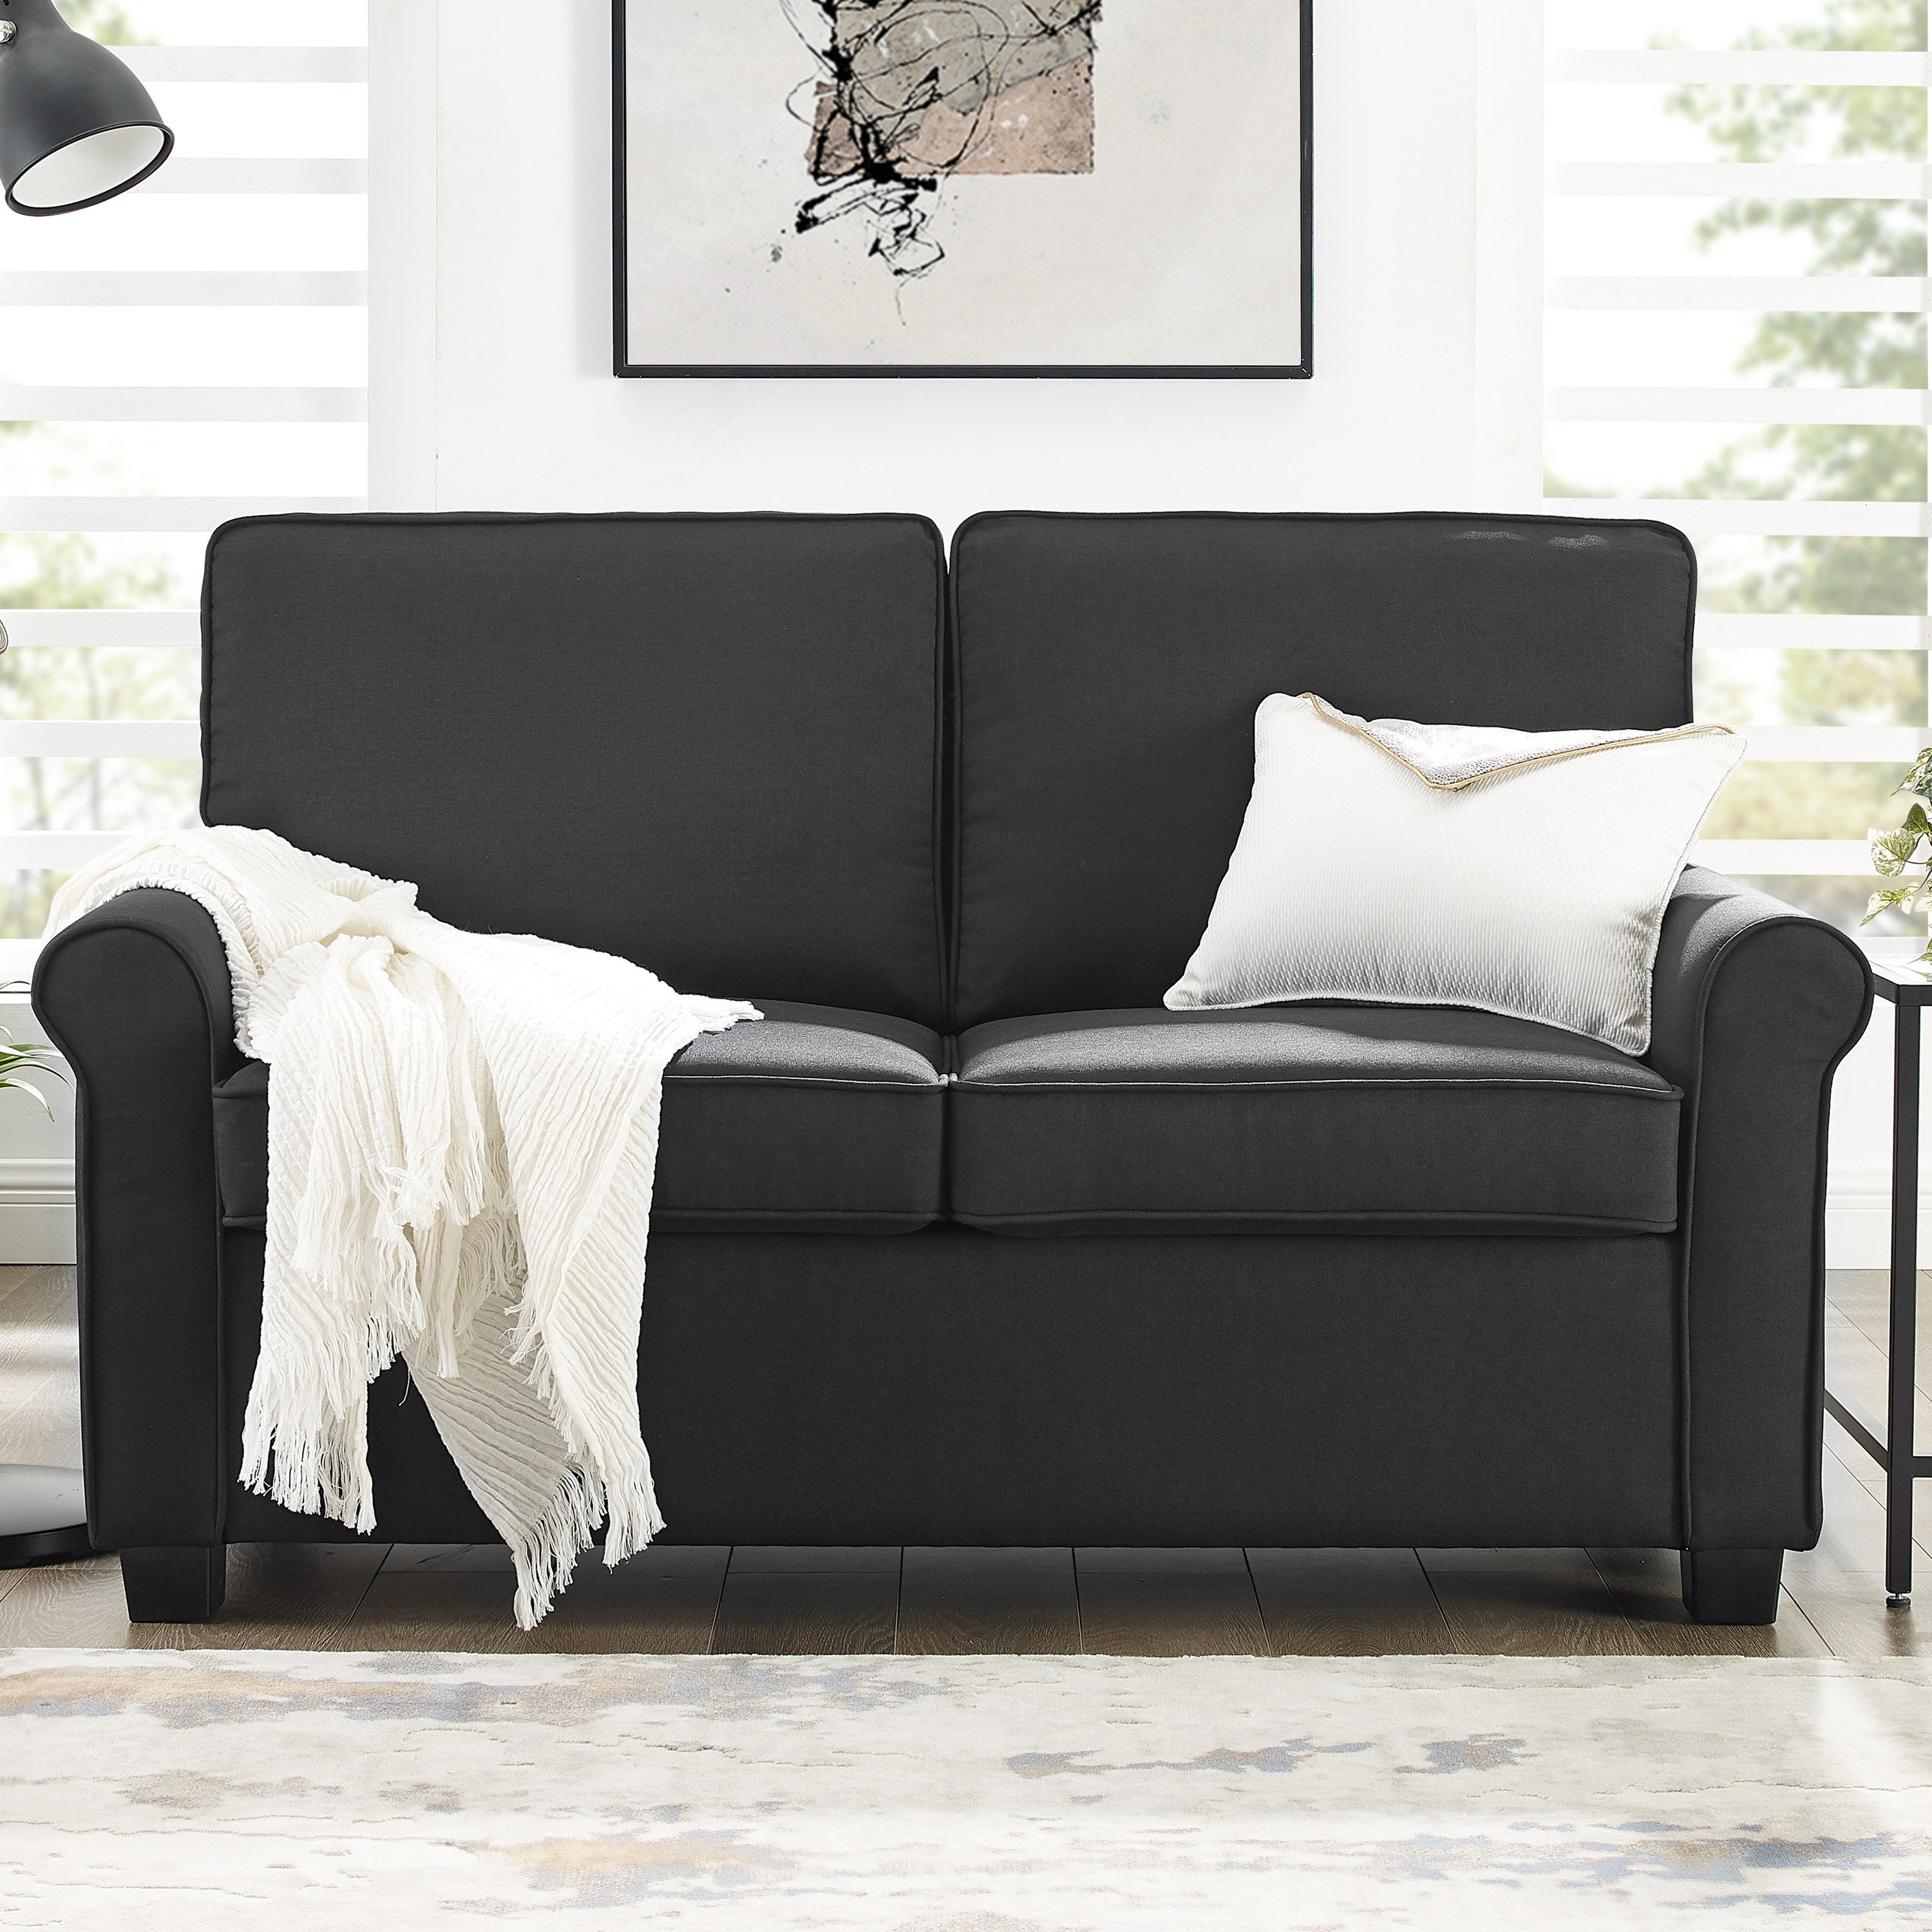 black loveseat sleeper couch